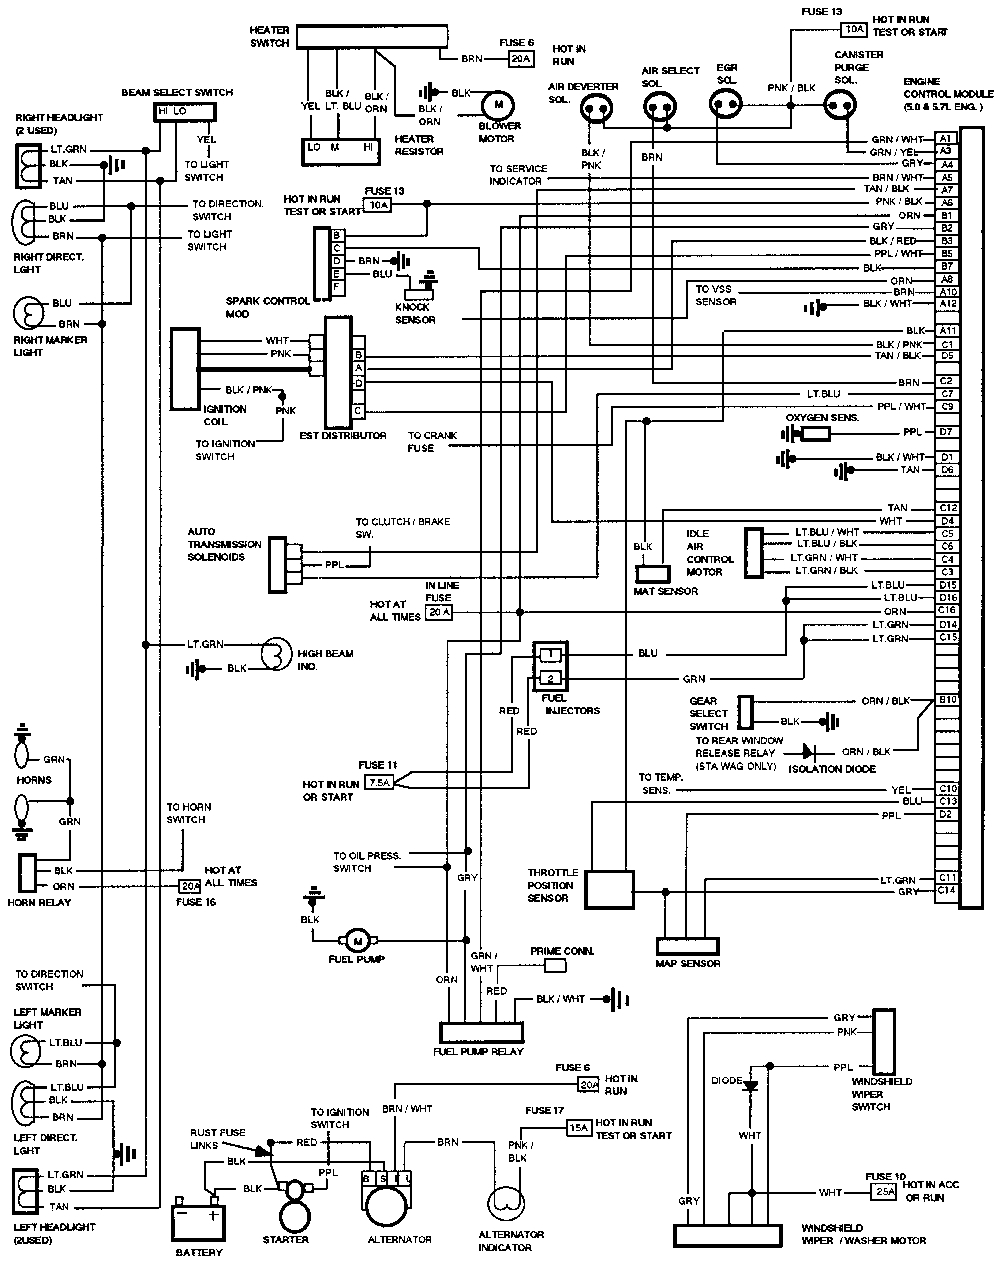 link belt excavator wiring diagram gallery